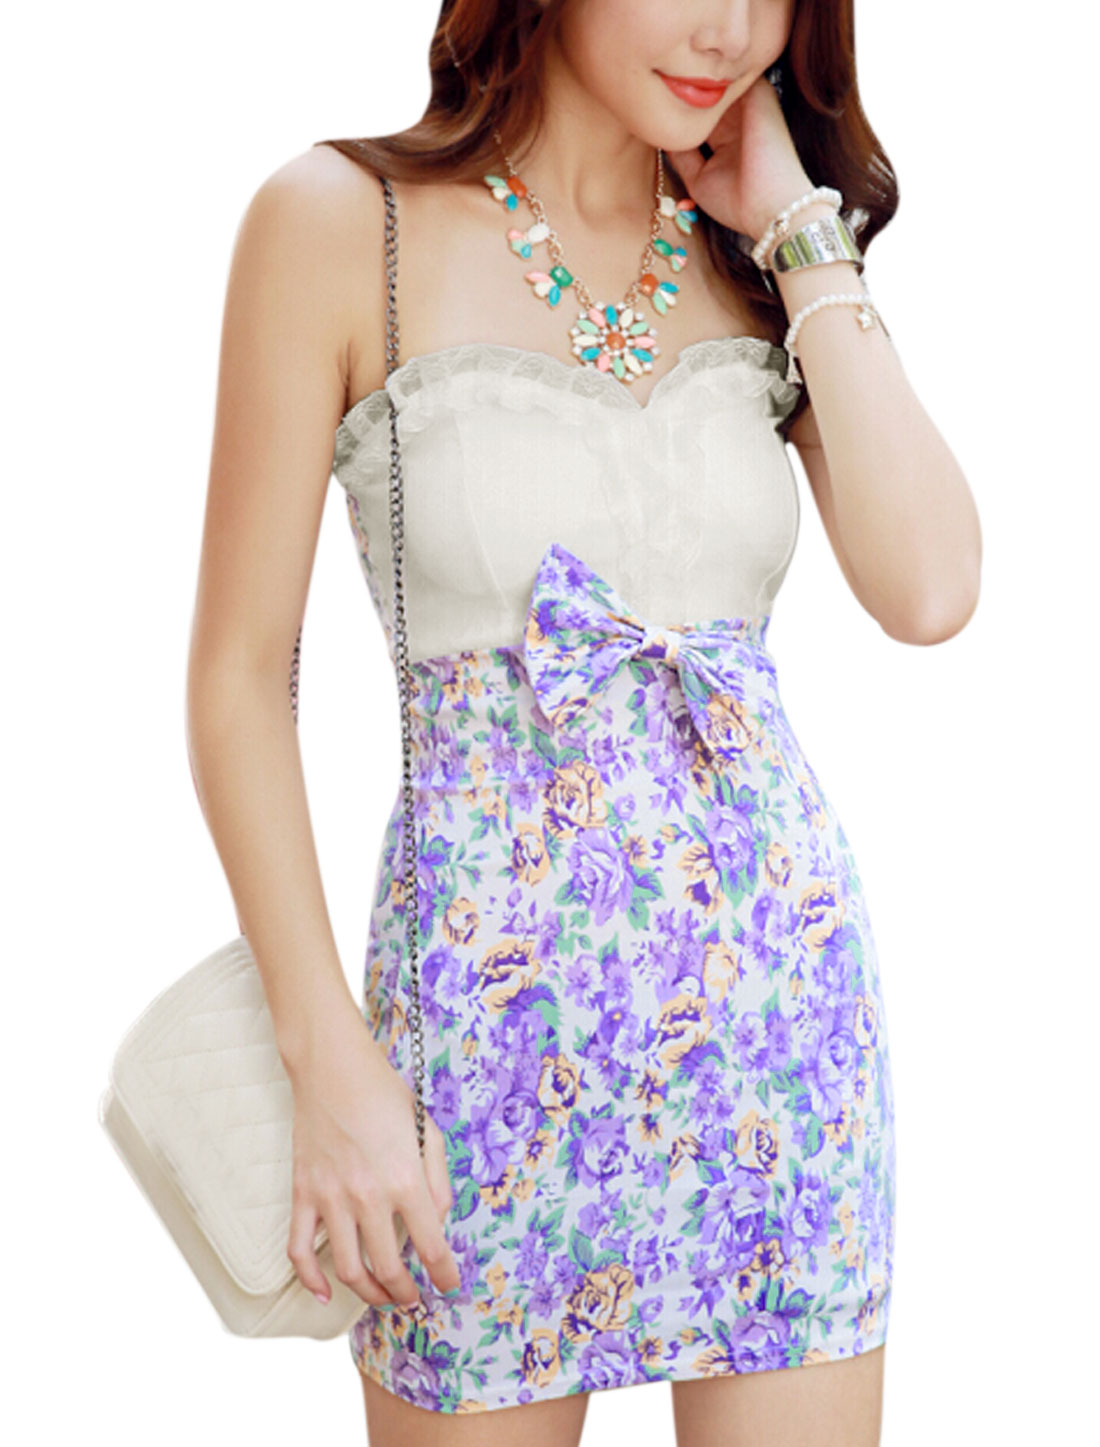 Lady Strapless Padded Bust Flower Pattern Mini Dress White Lavender XS